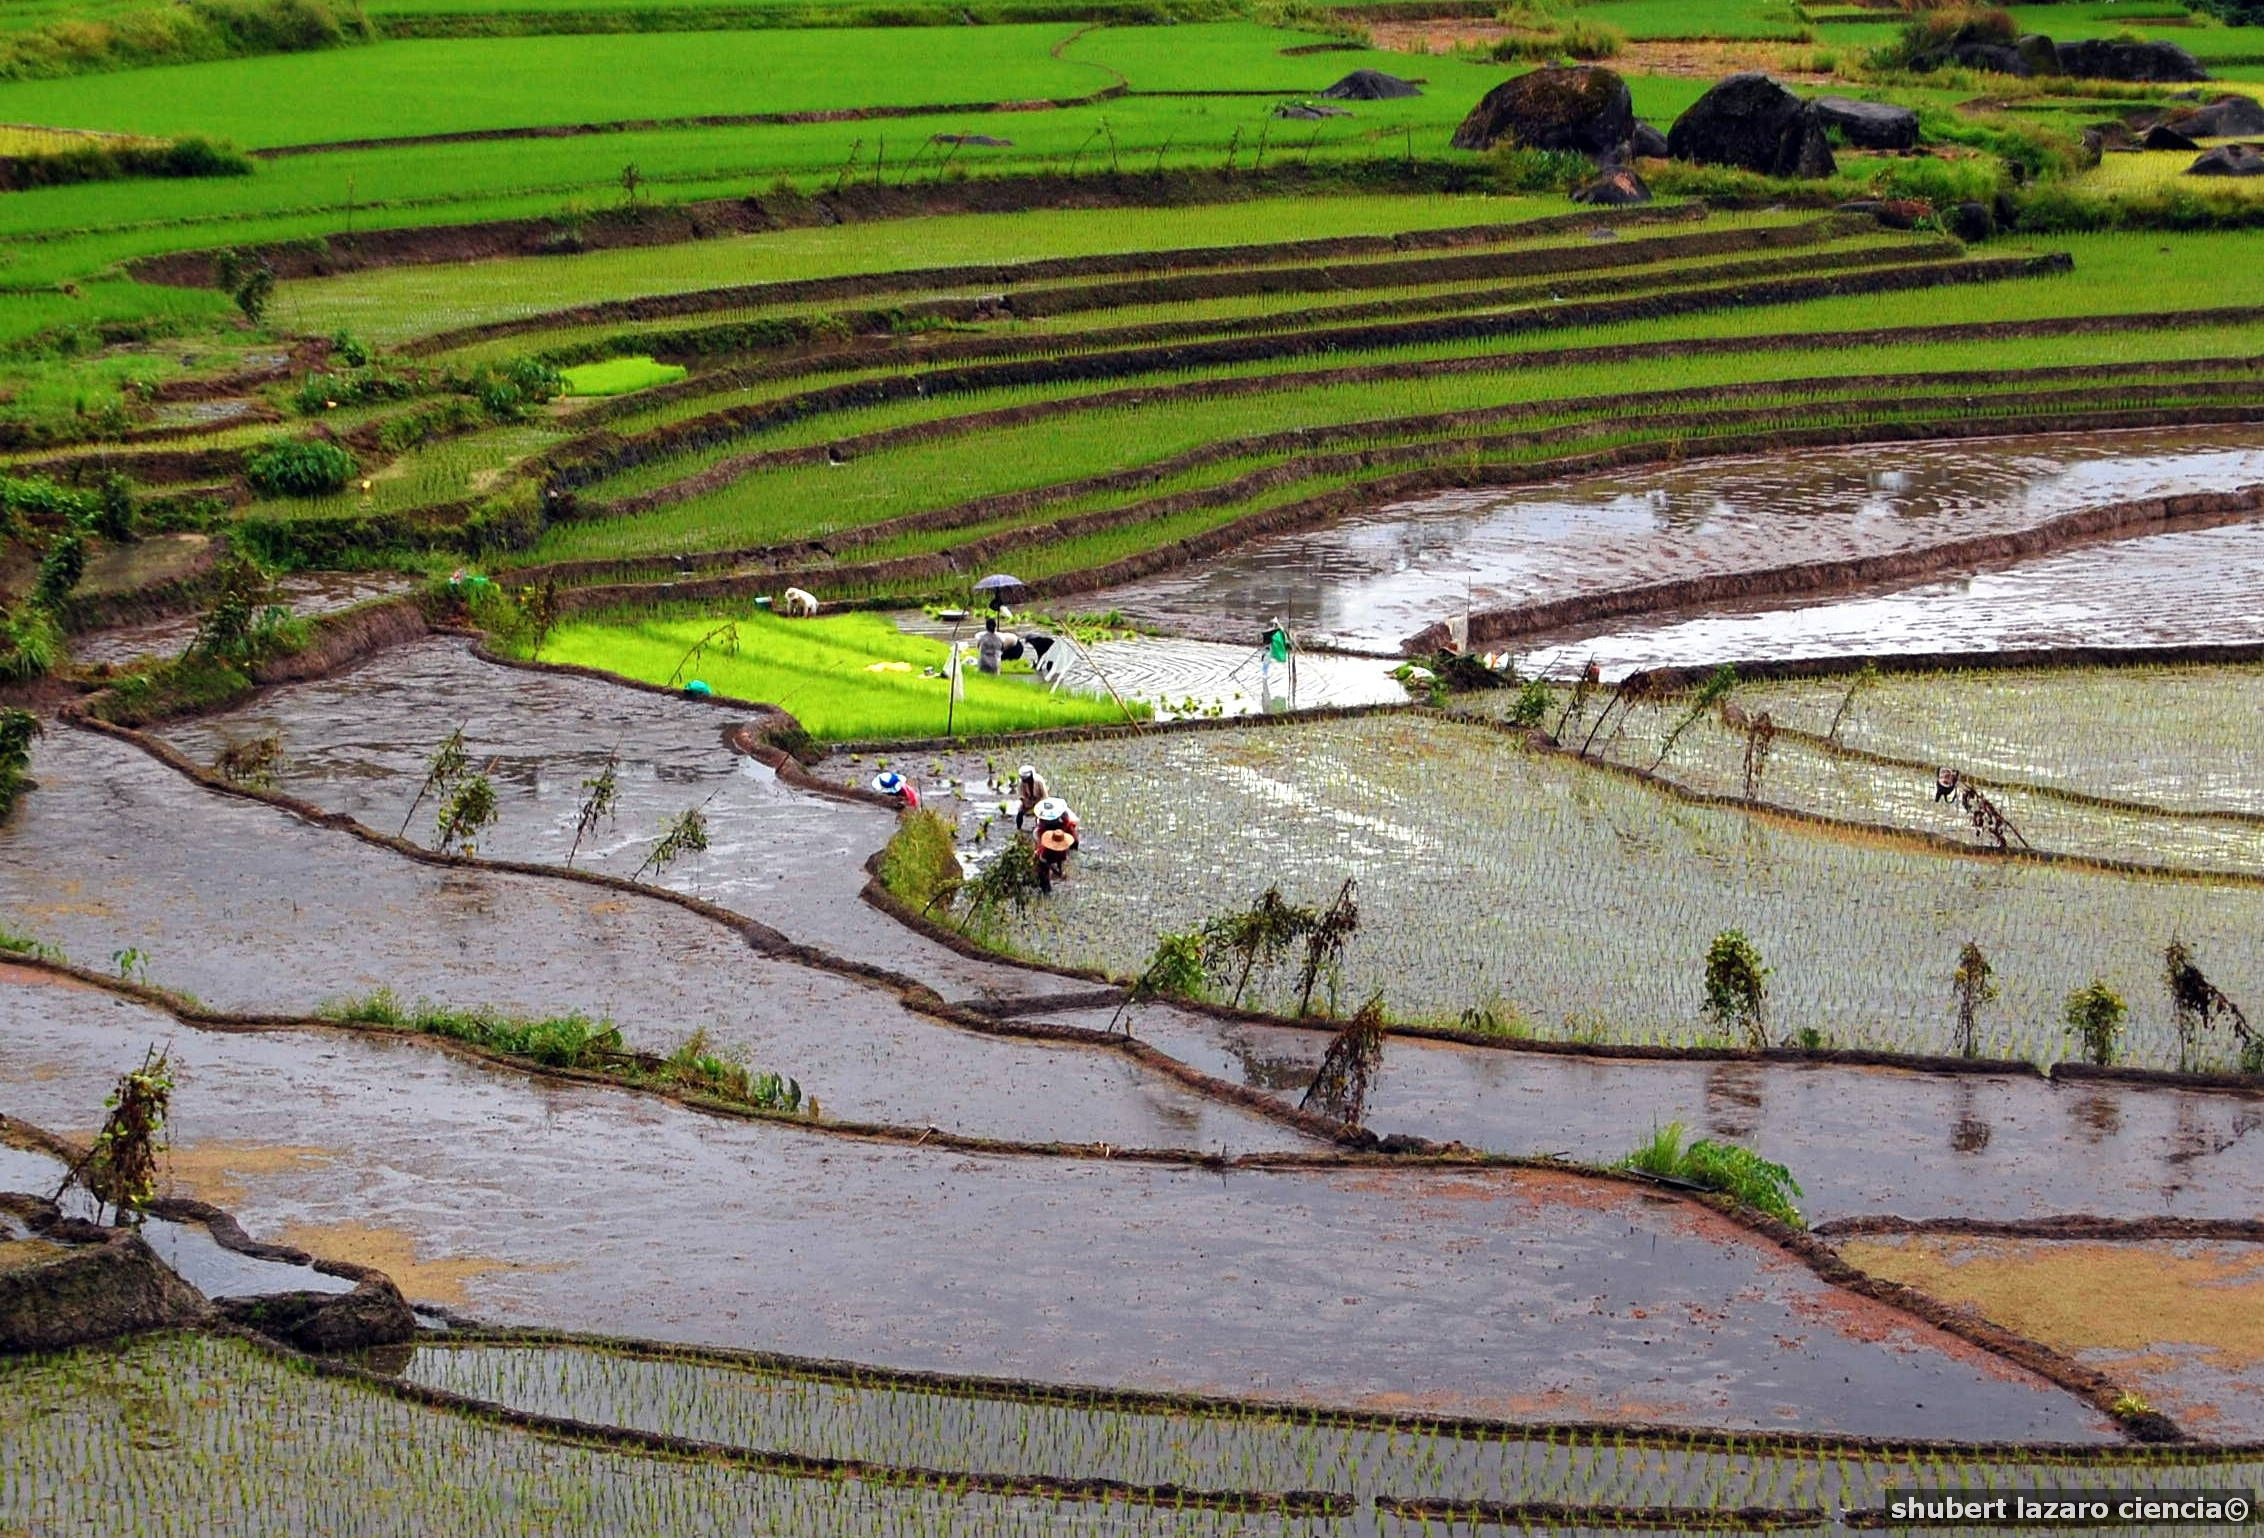 Nagacadan Rice Terraces (Kiangan, Ifugao), Philippines